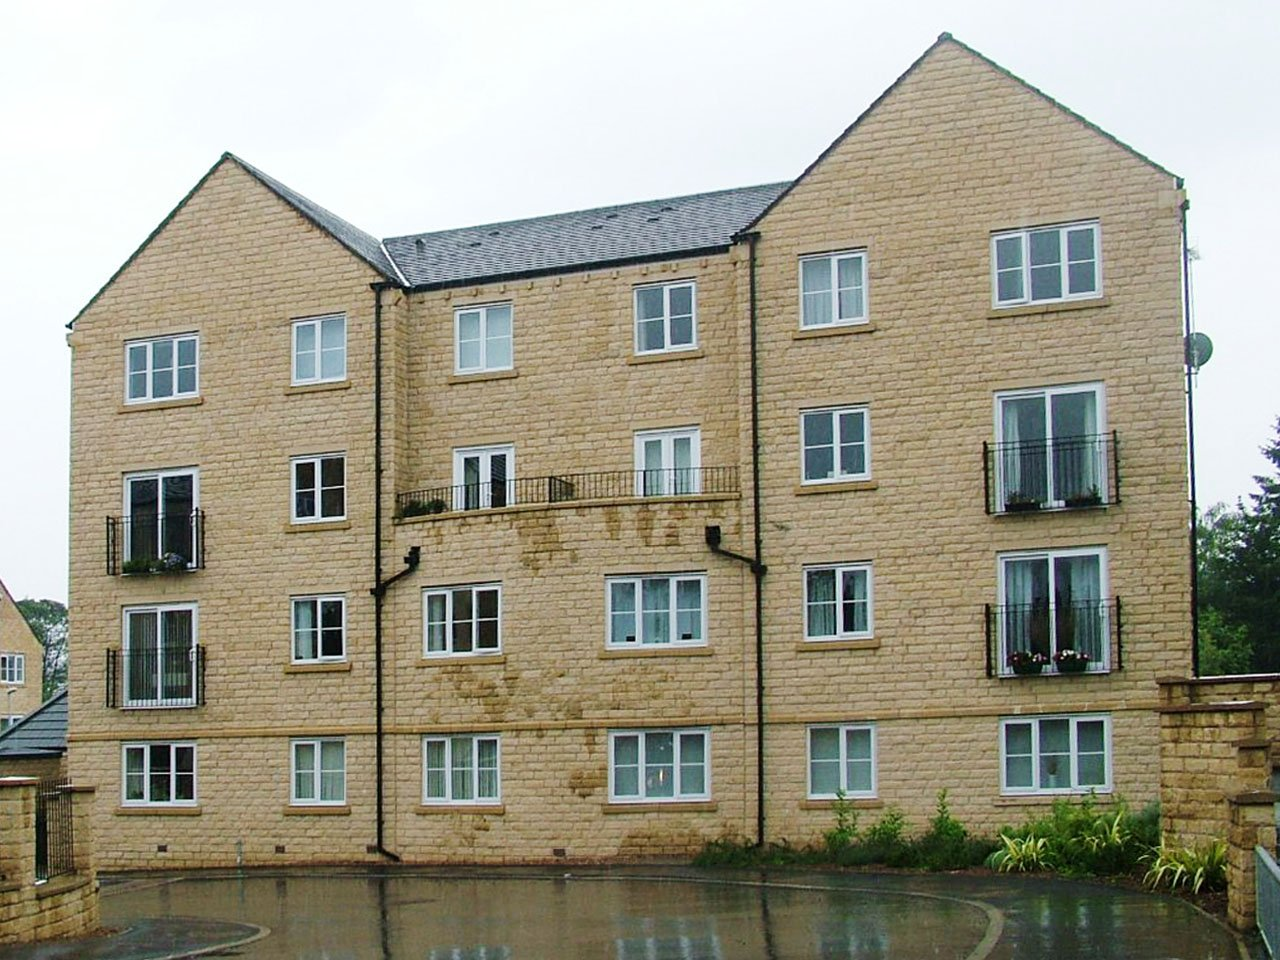 Block E. 16 units. Mechants Court, Bingley. For Barratt Leeds copy